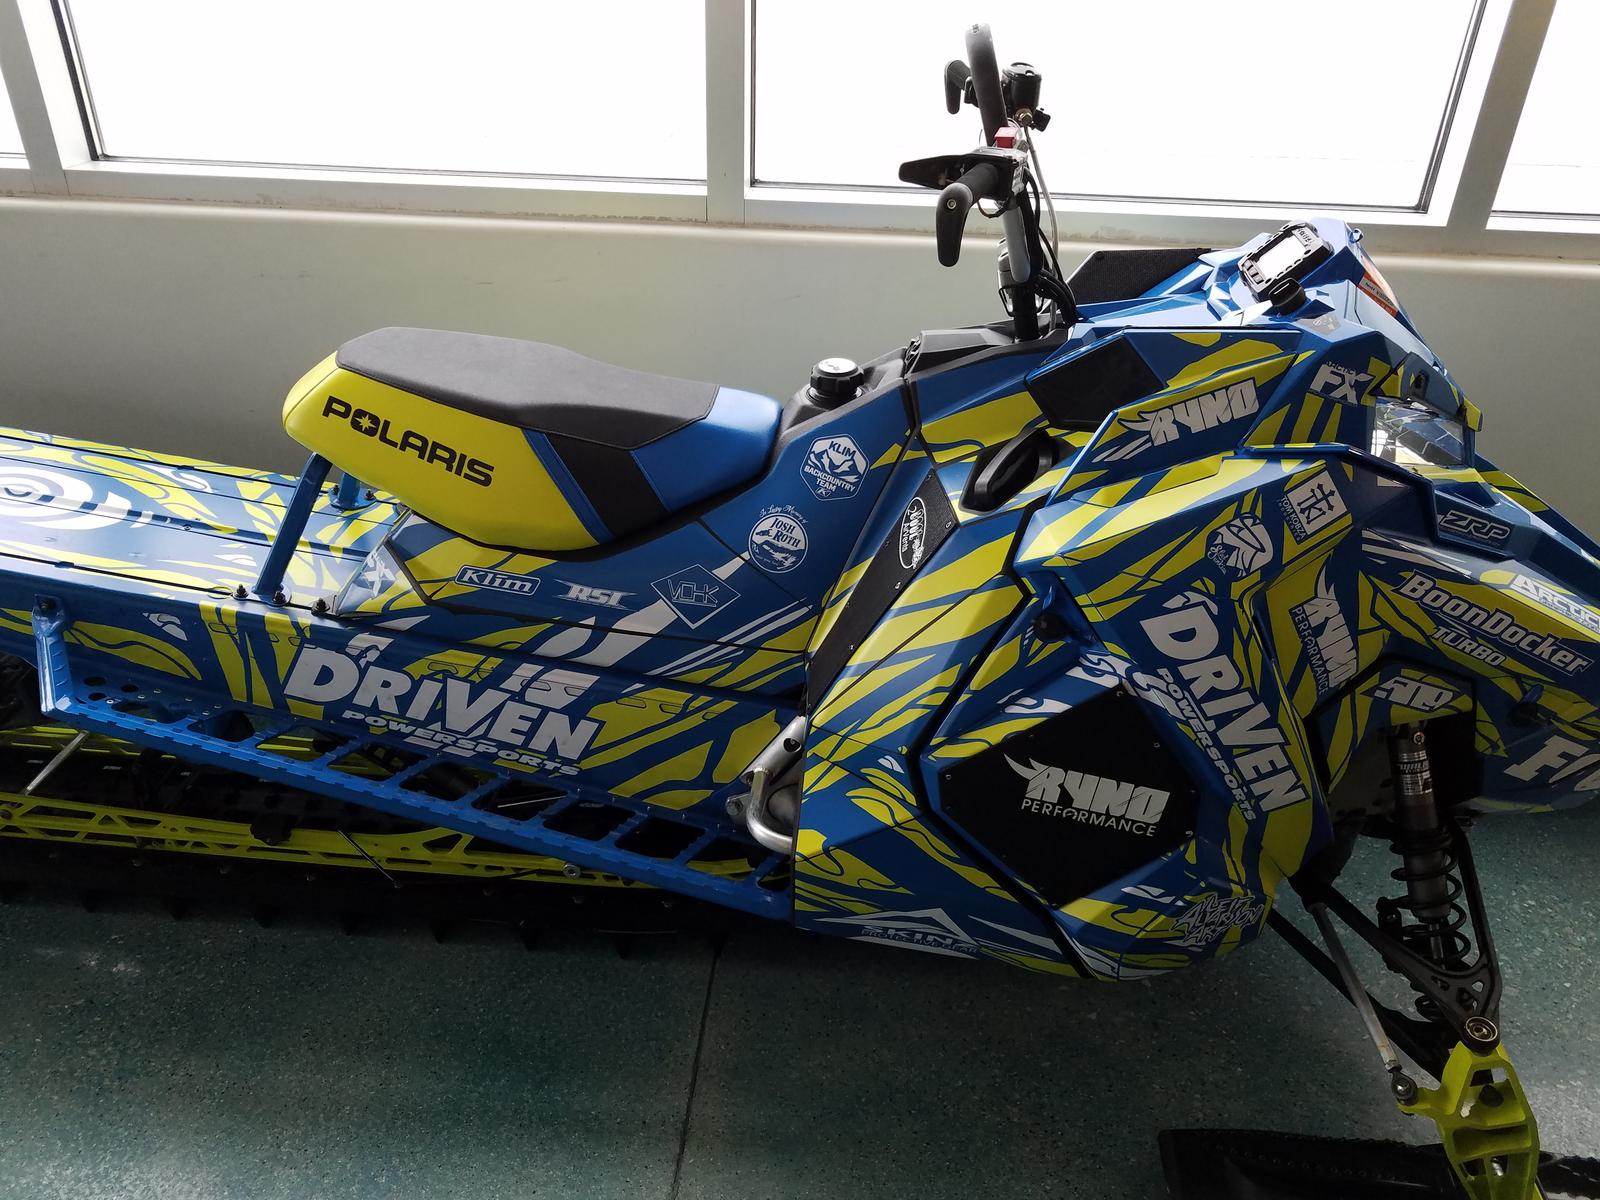 Inventory from Polaris Industries and Ski-Doo Driven Powersports and